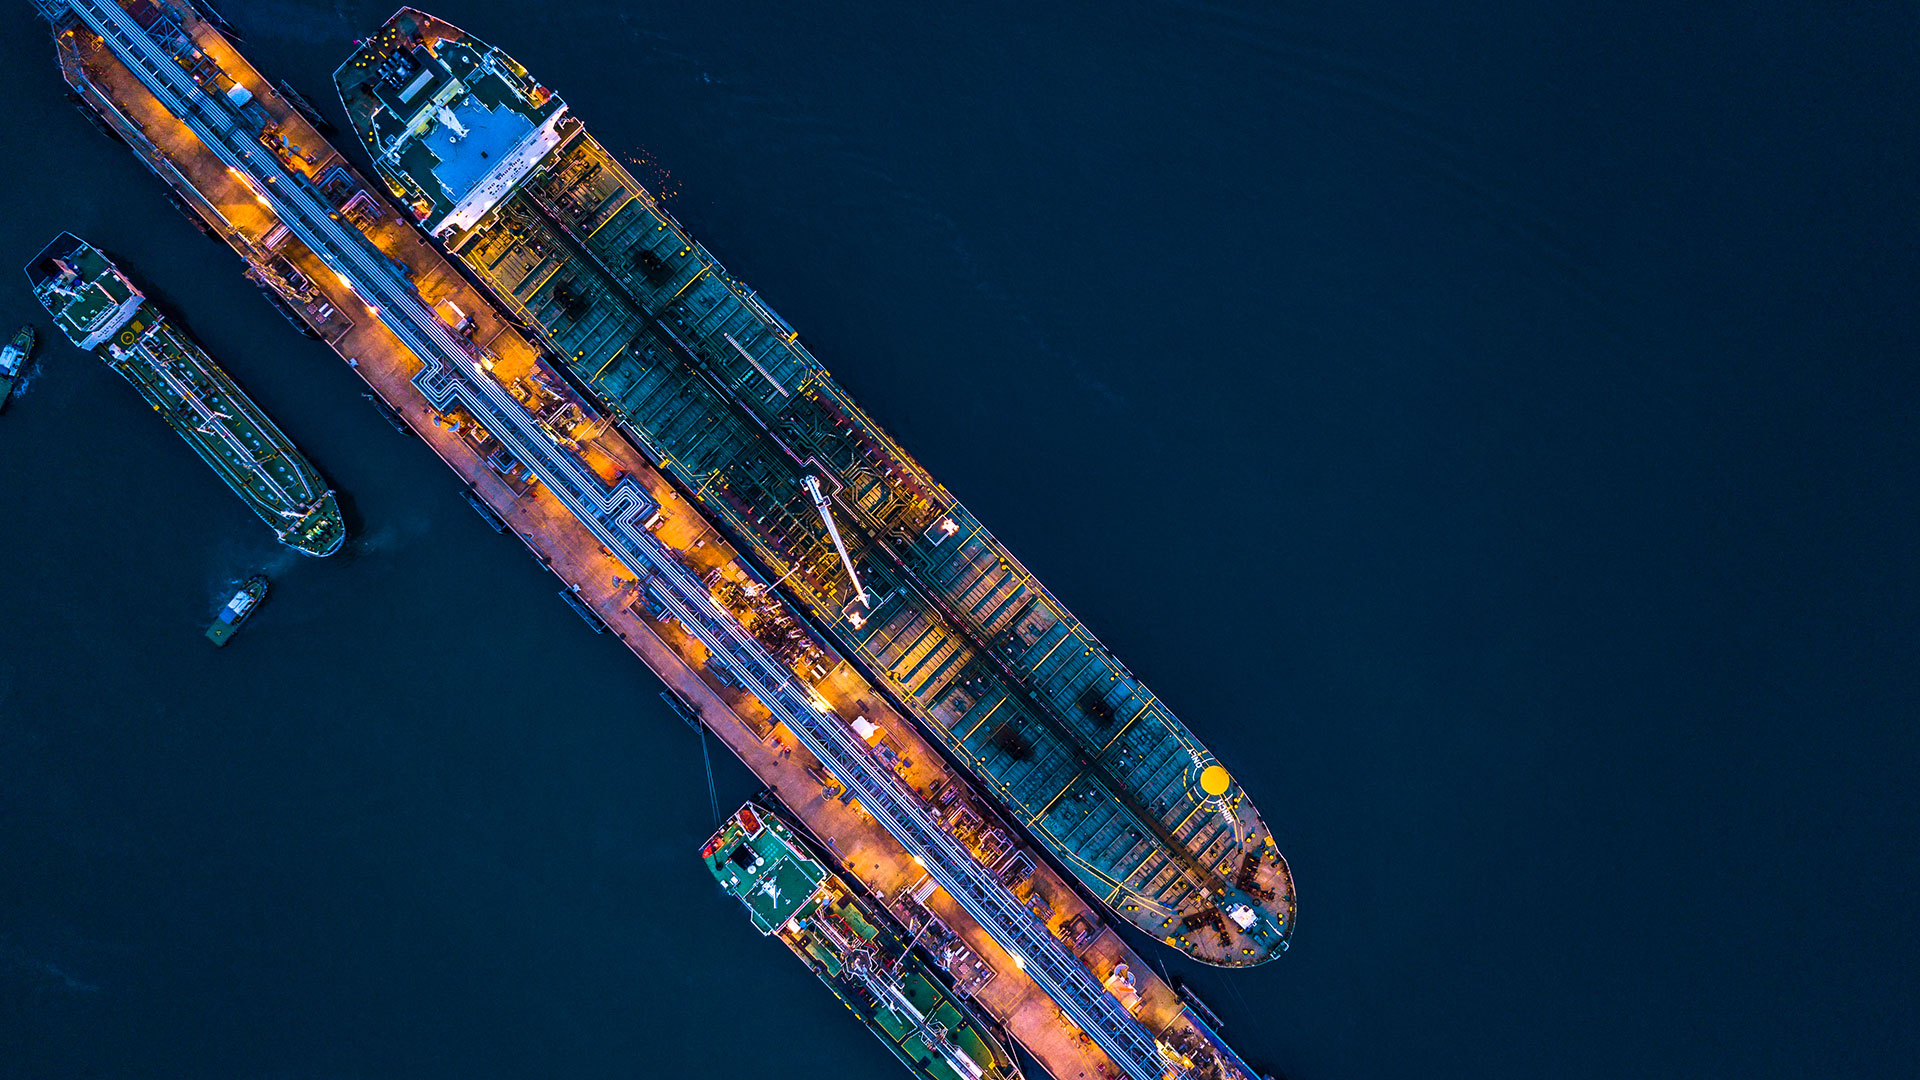 Ship overhead night